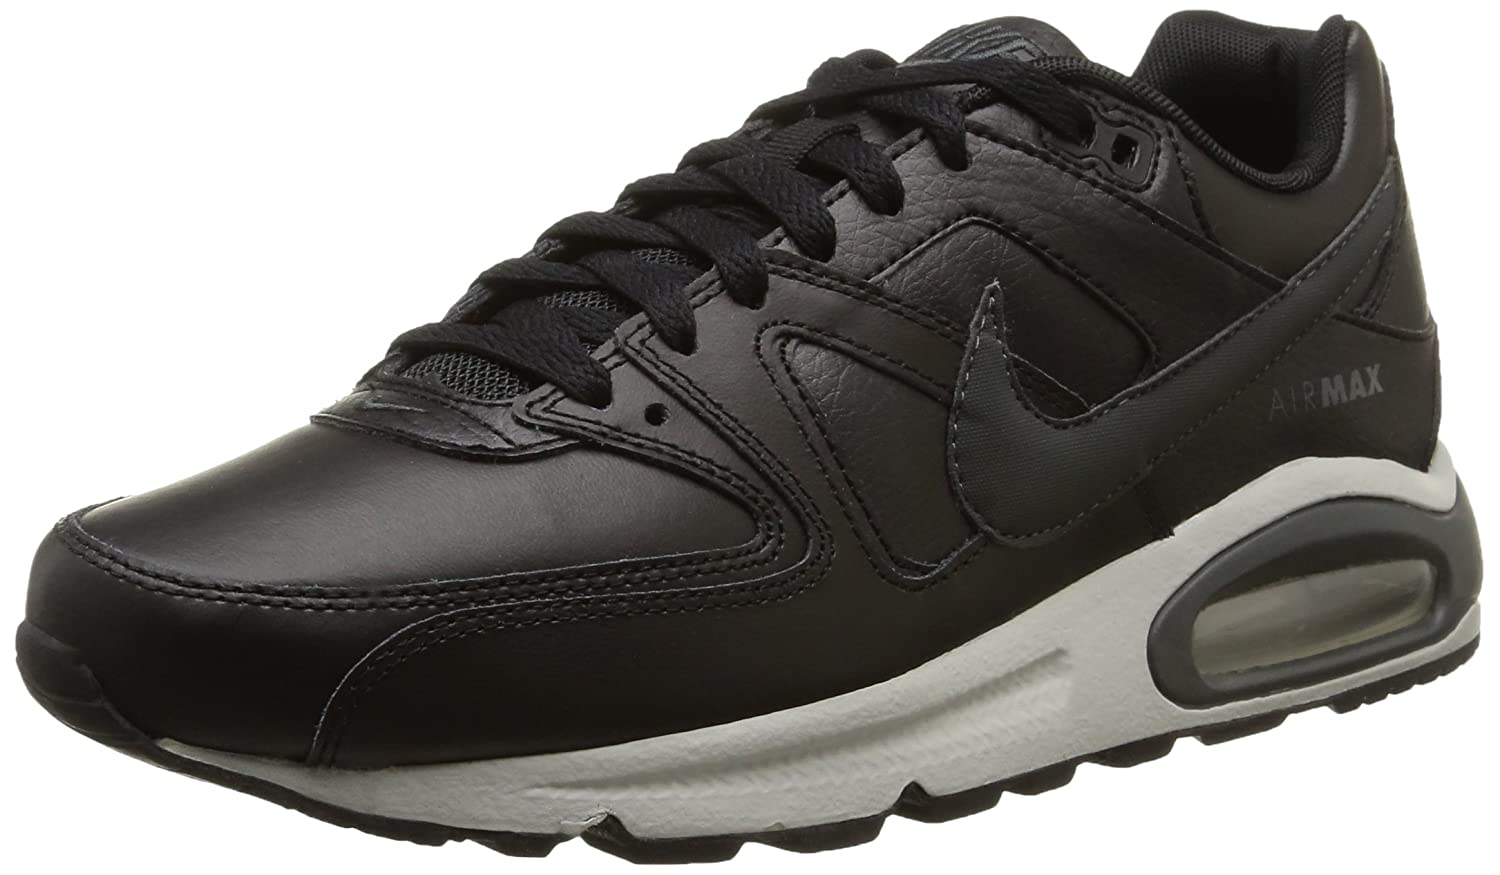 TALLA 42 EU. Nike Zapatillas Air MAX Command Leather